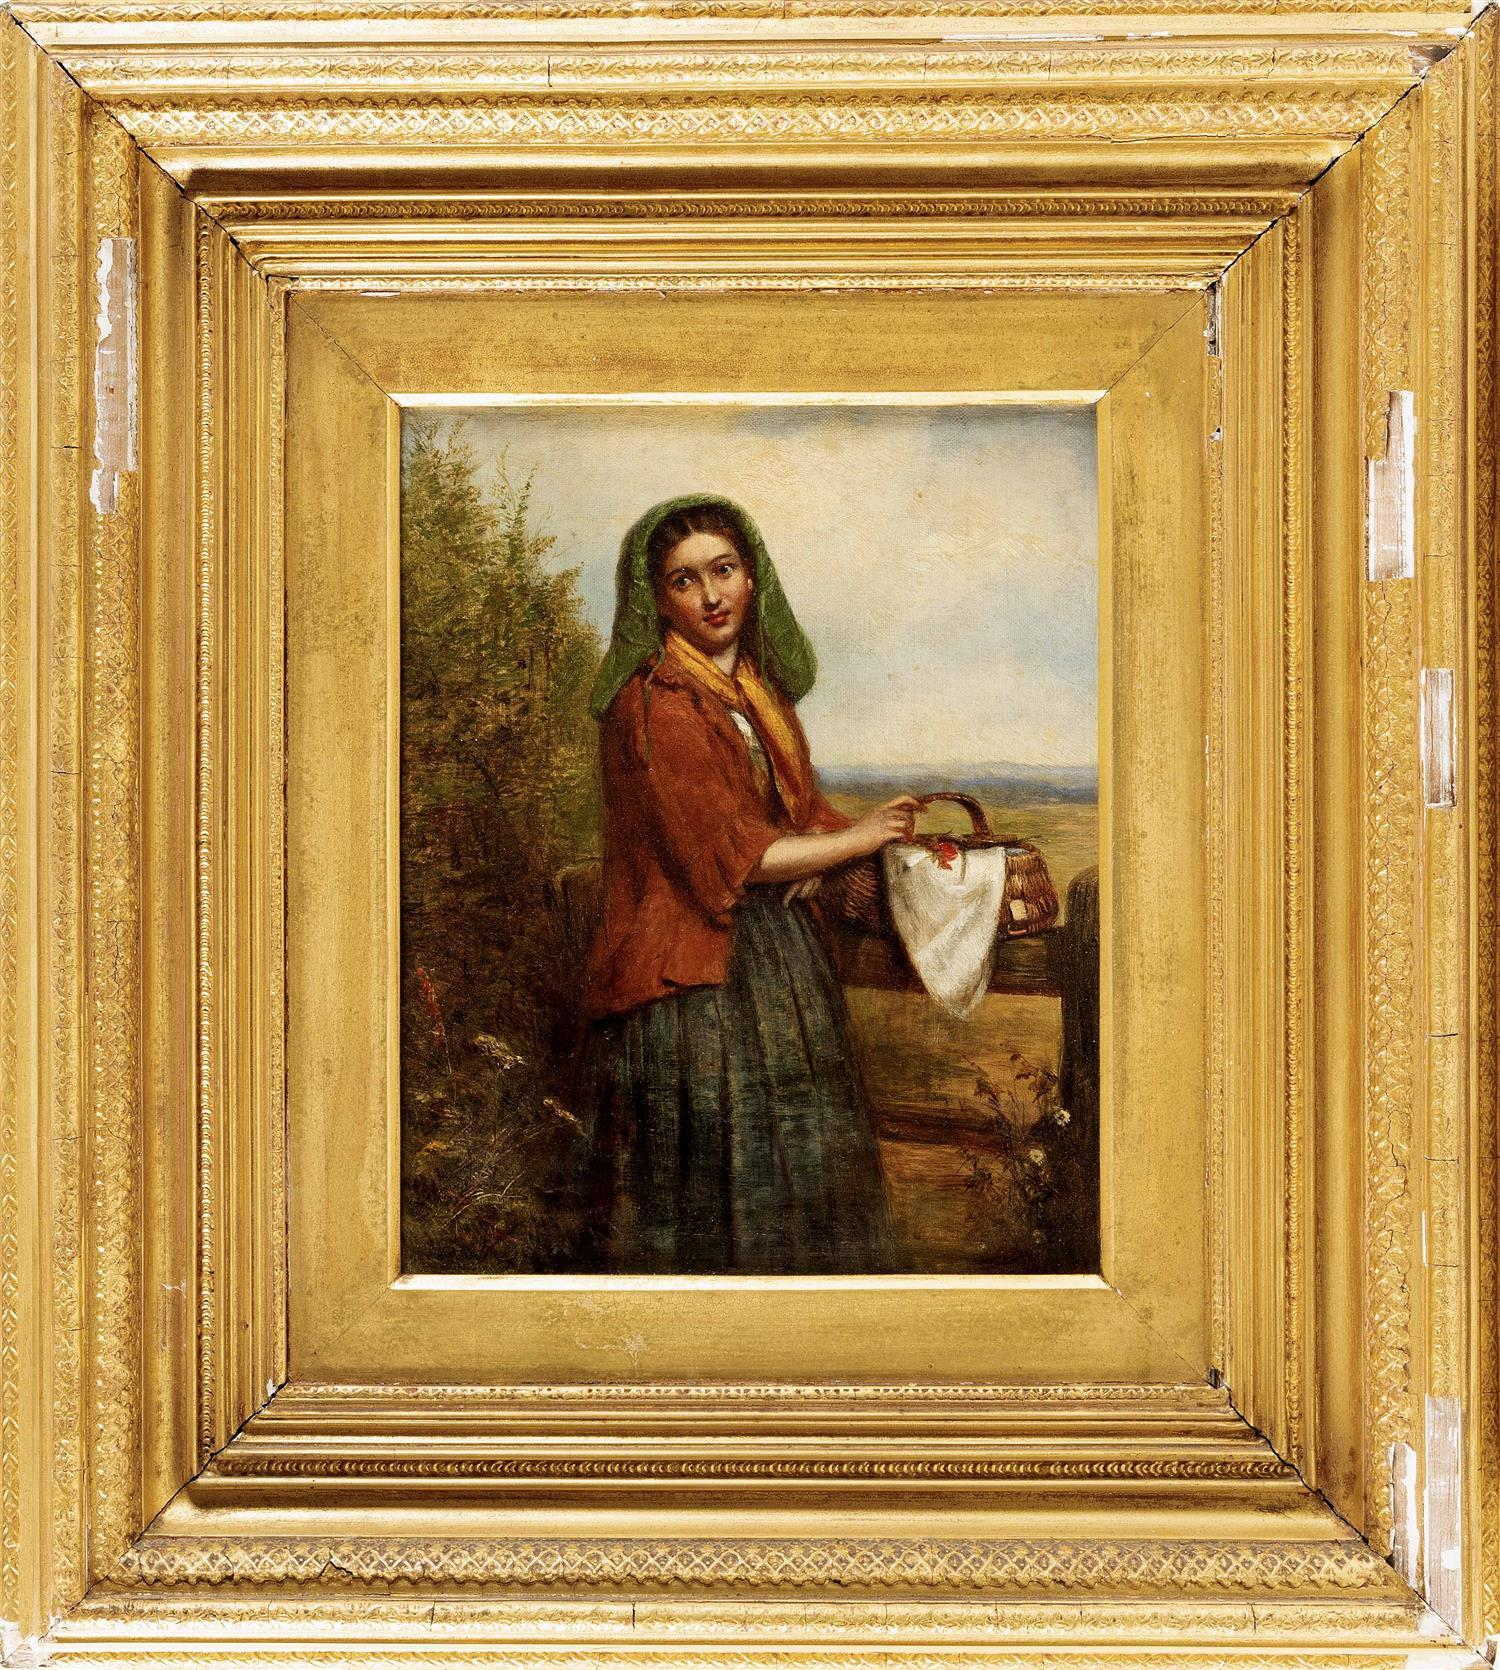 """ATTRIBUTED TO JOSEPH MOSELEY BARBER, England, 1757-1811, A young woman with a basket., Oil on canvas, 12"""" x 10"""". Framed 23"""" x 21""""."""